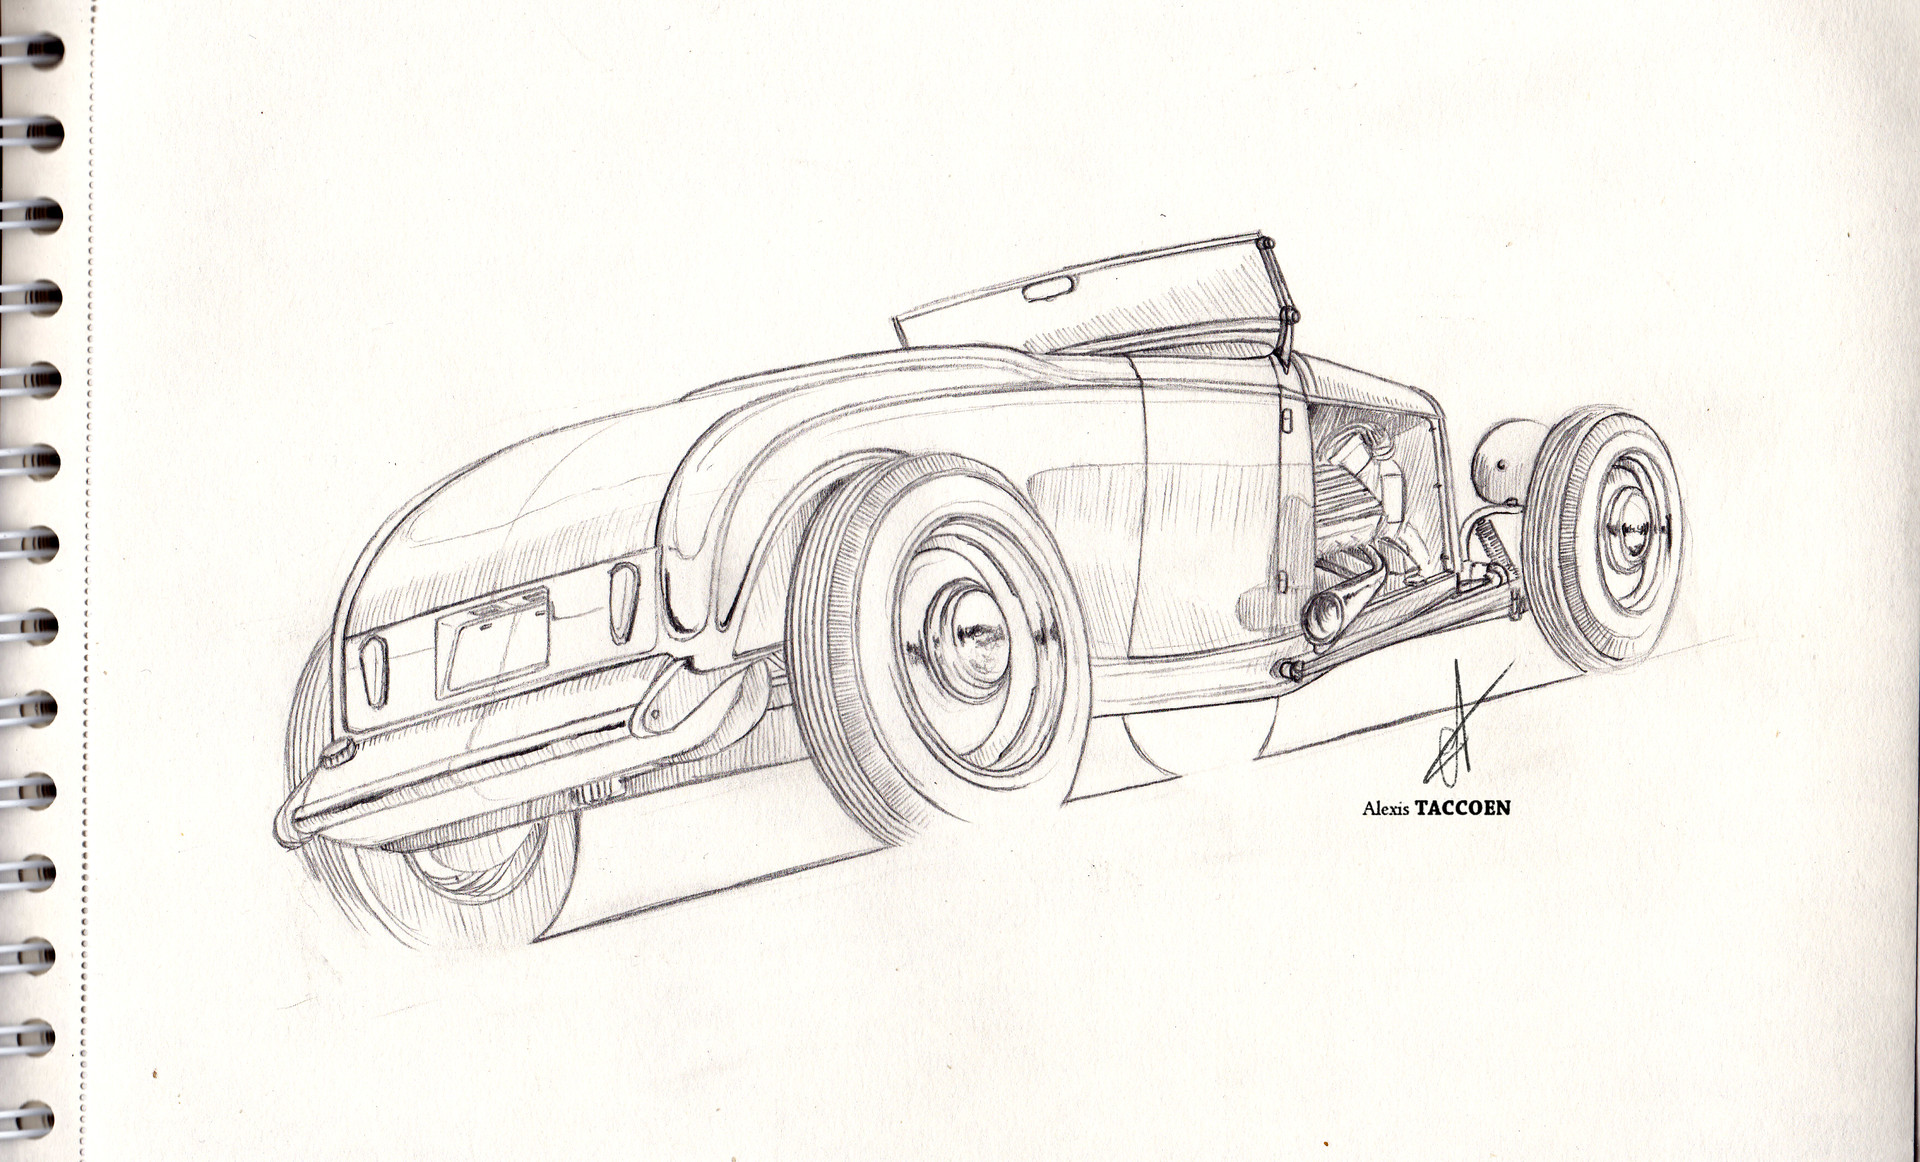 Alexis taccoen hot rod sketch